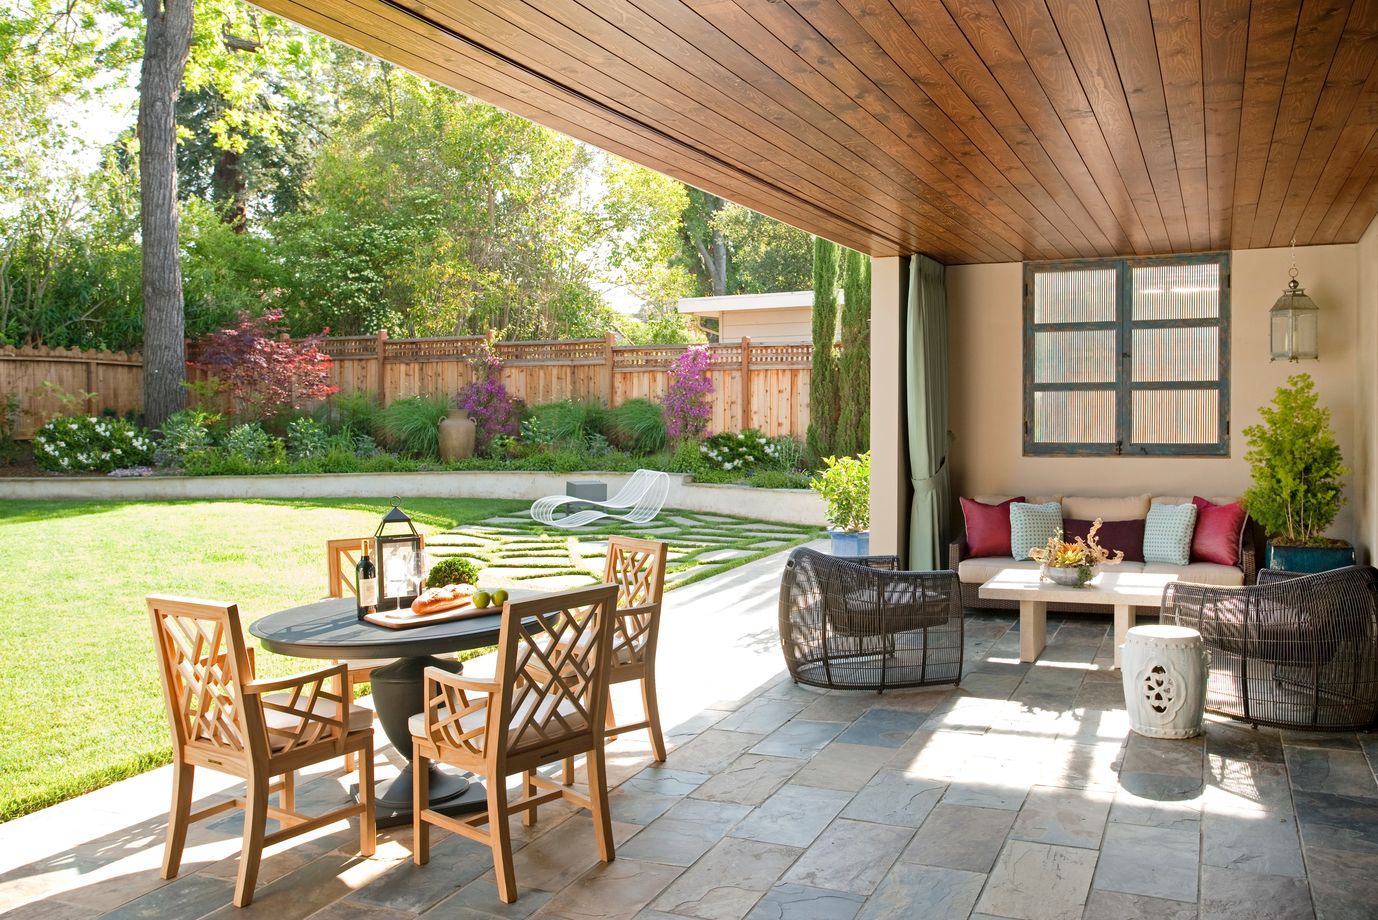 Outdoor living 8 ideas to get the most out of your space Home plans with outdoor living